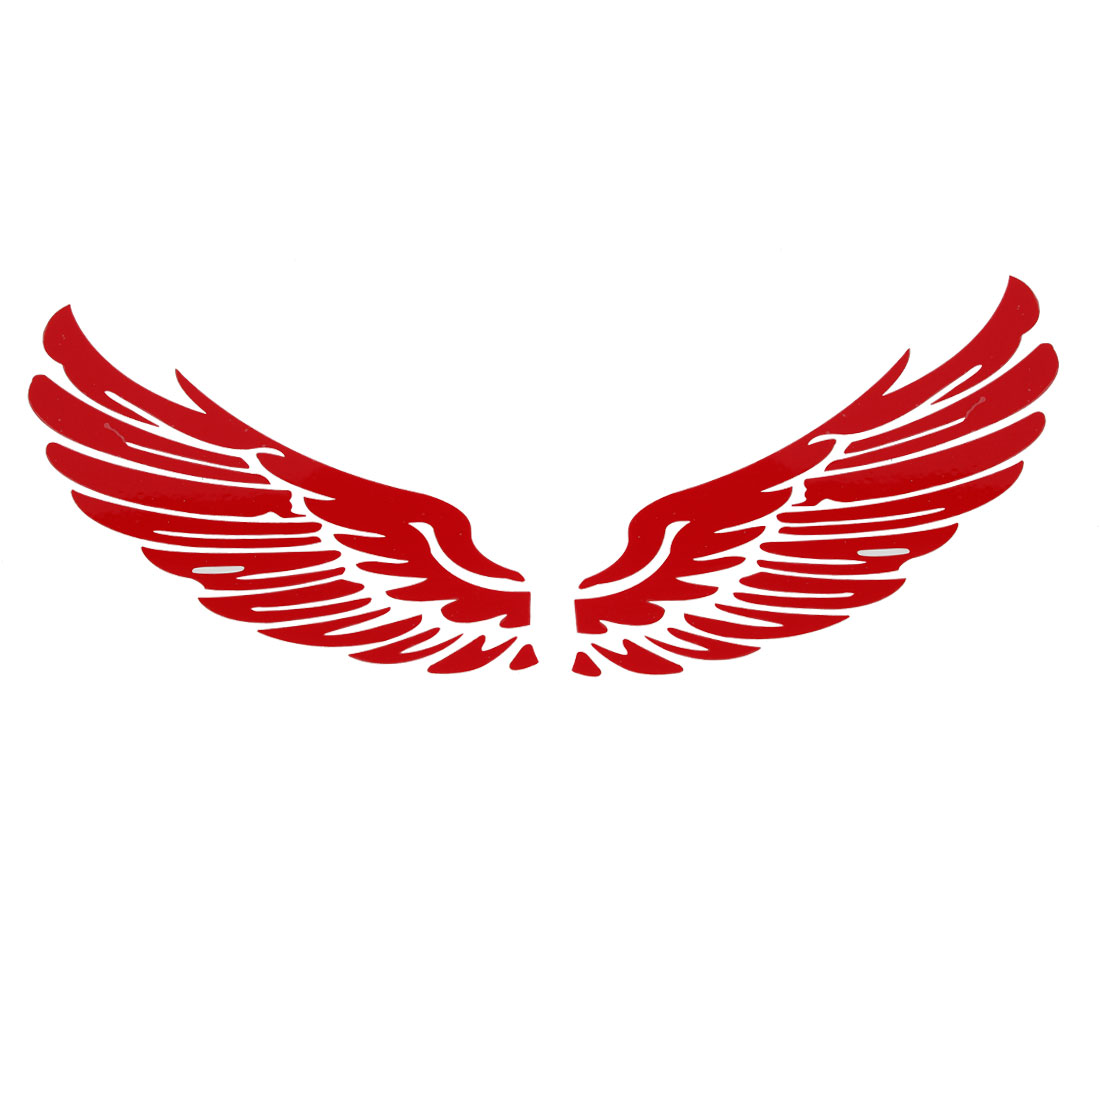 Red Vinly Feather Design Exterior Sticker Decor 2pcs for Car